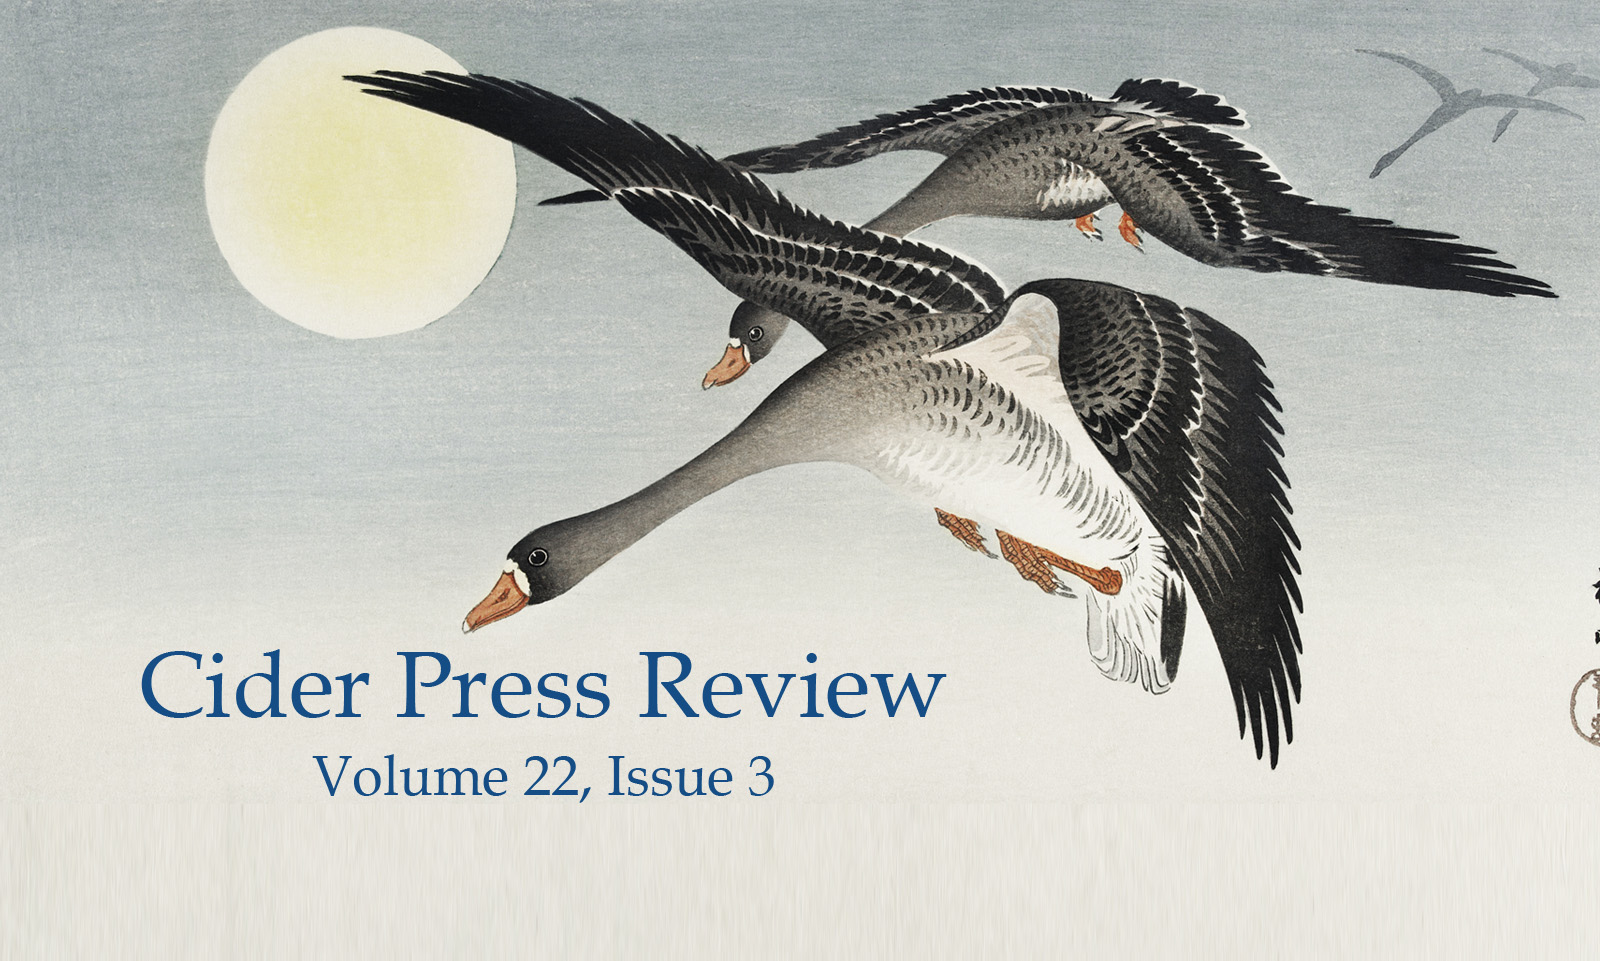 CPR Volume 22, Issue 3